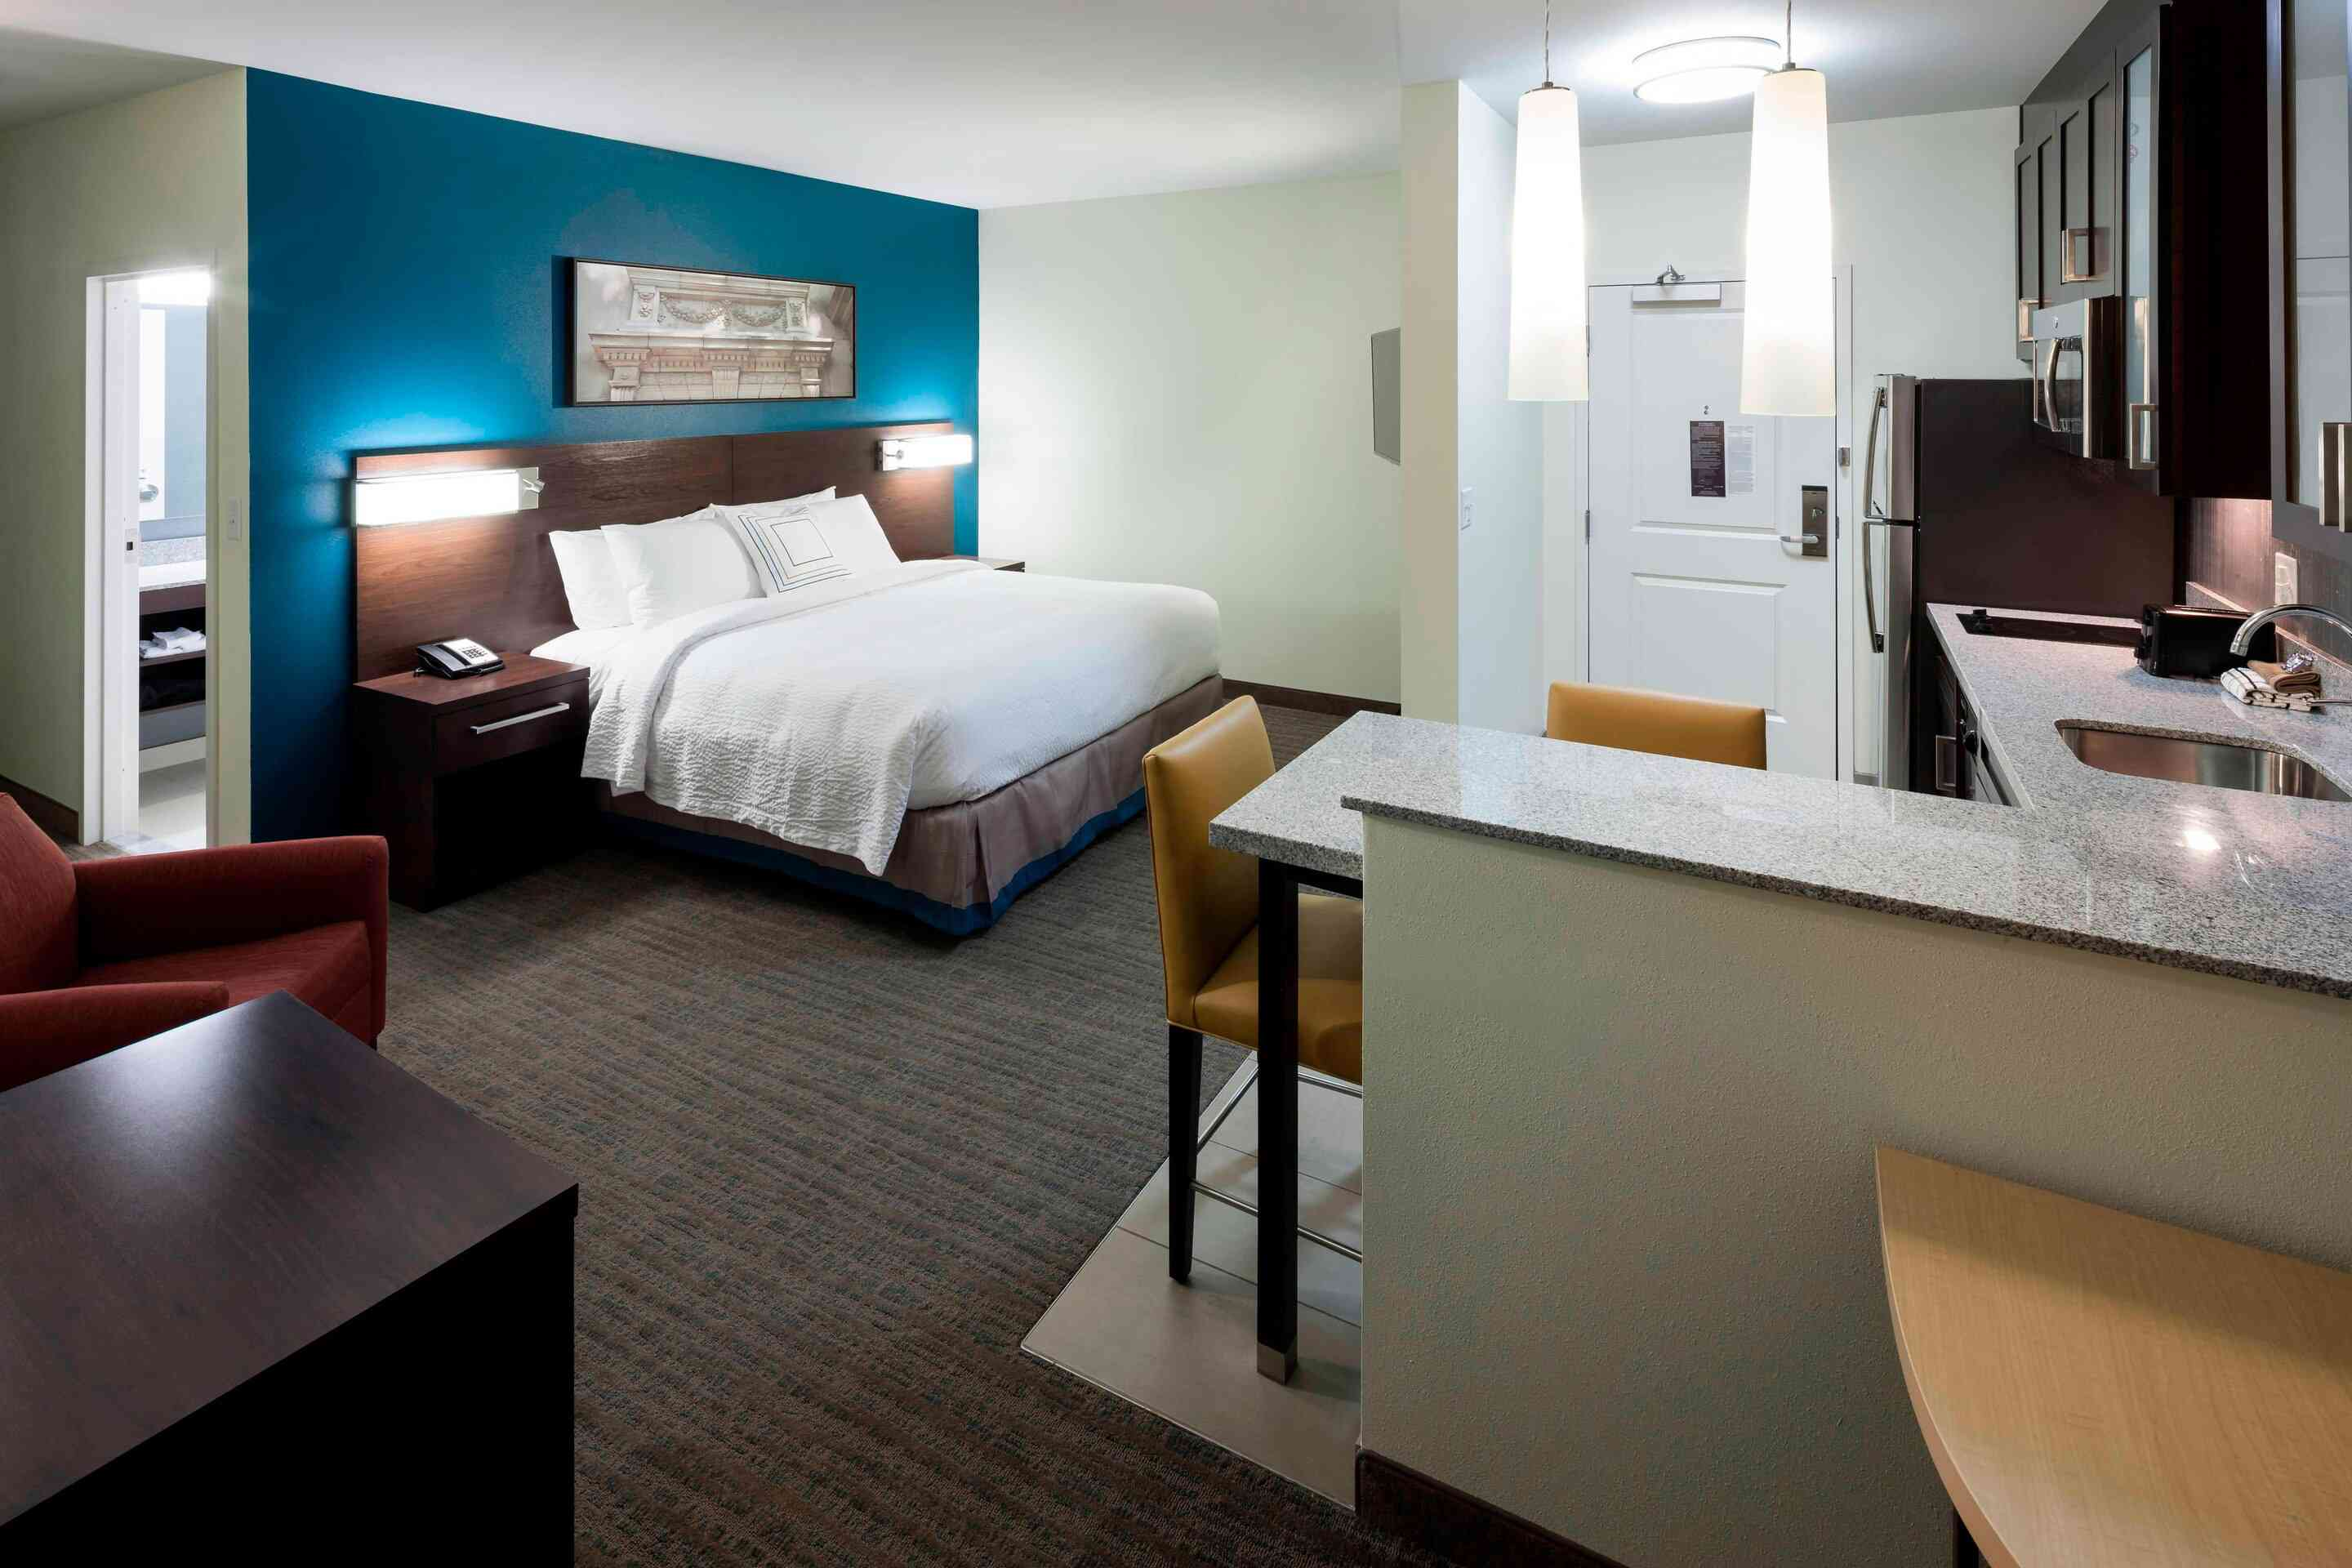 Studio-style hotel room with a kitchenette